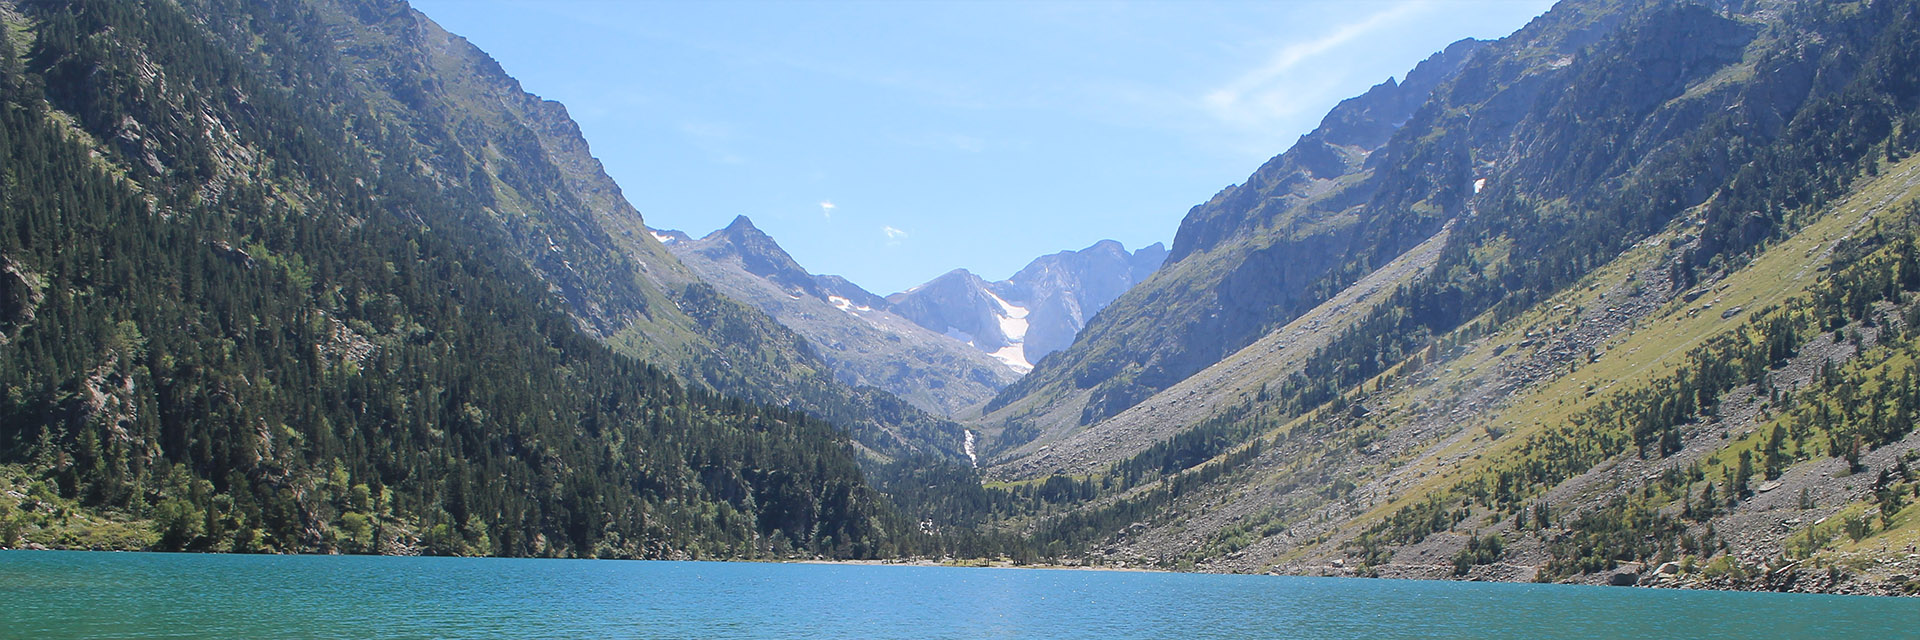 Village_club_vacances_pyrenees_clairevie_lac-de-gaube